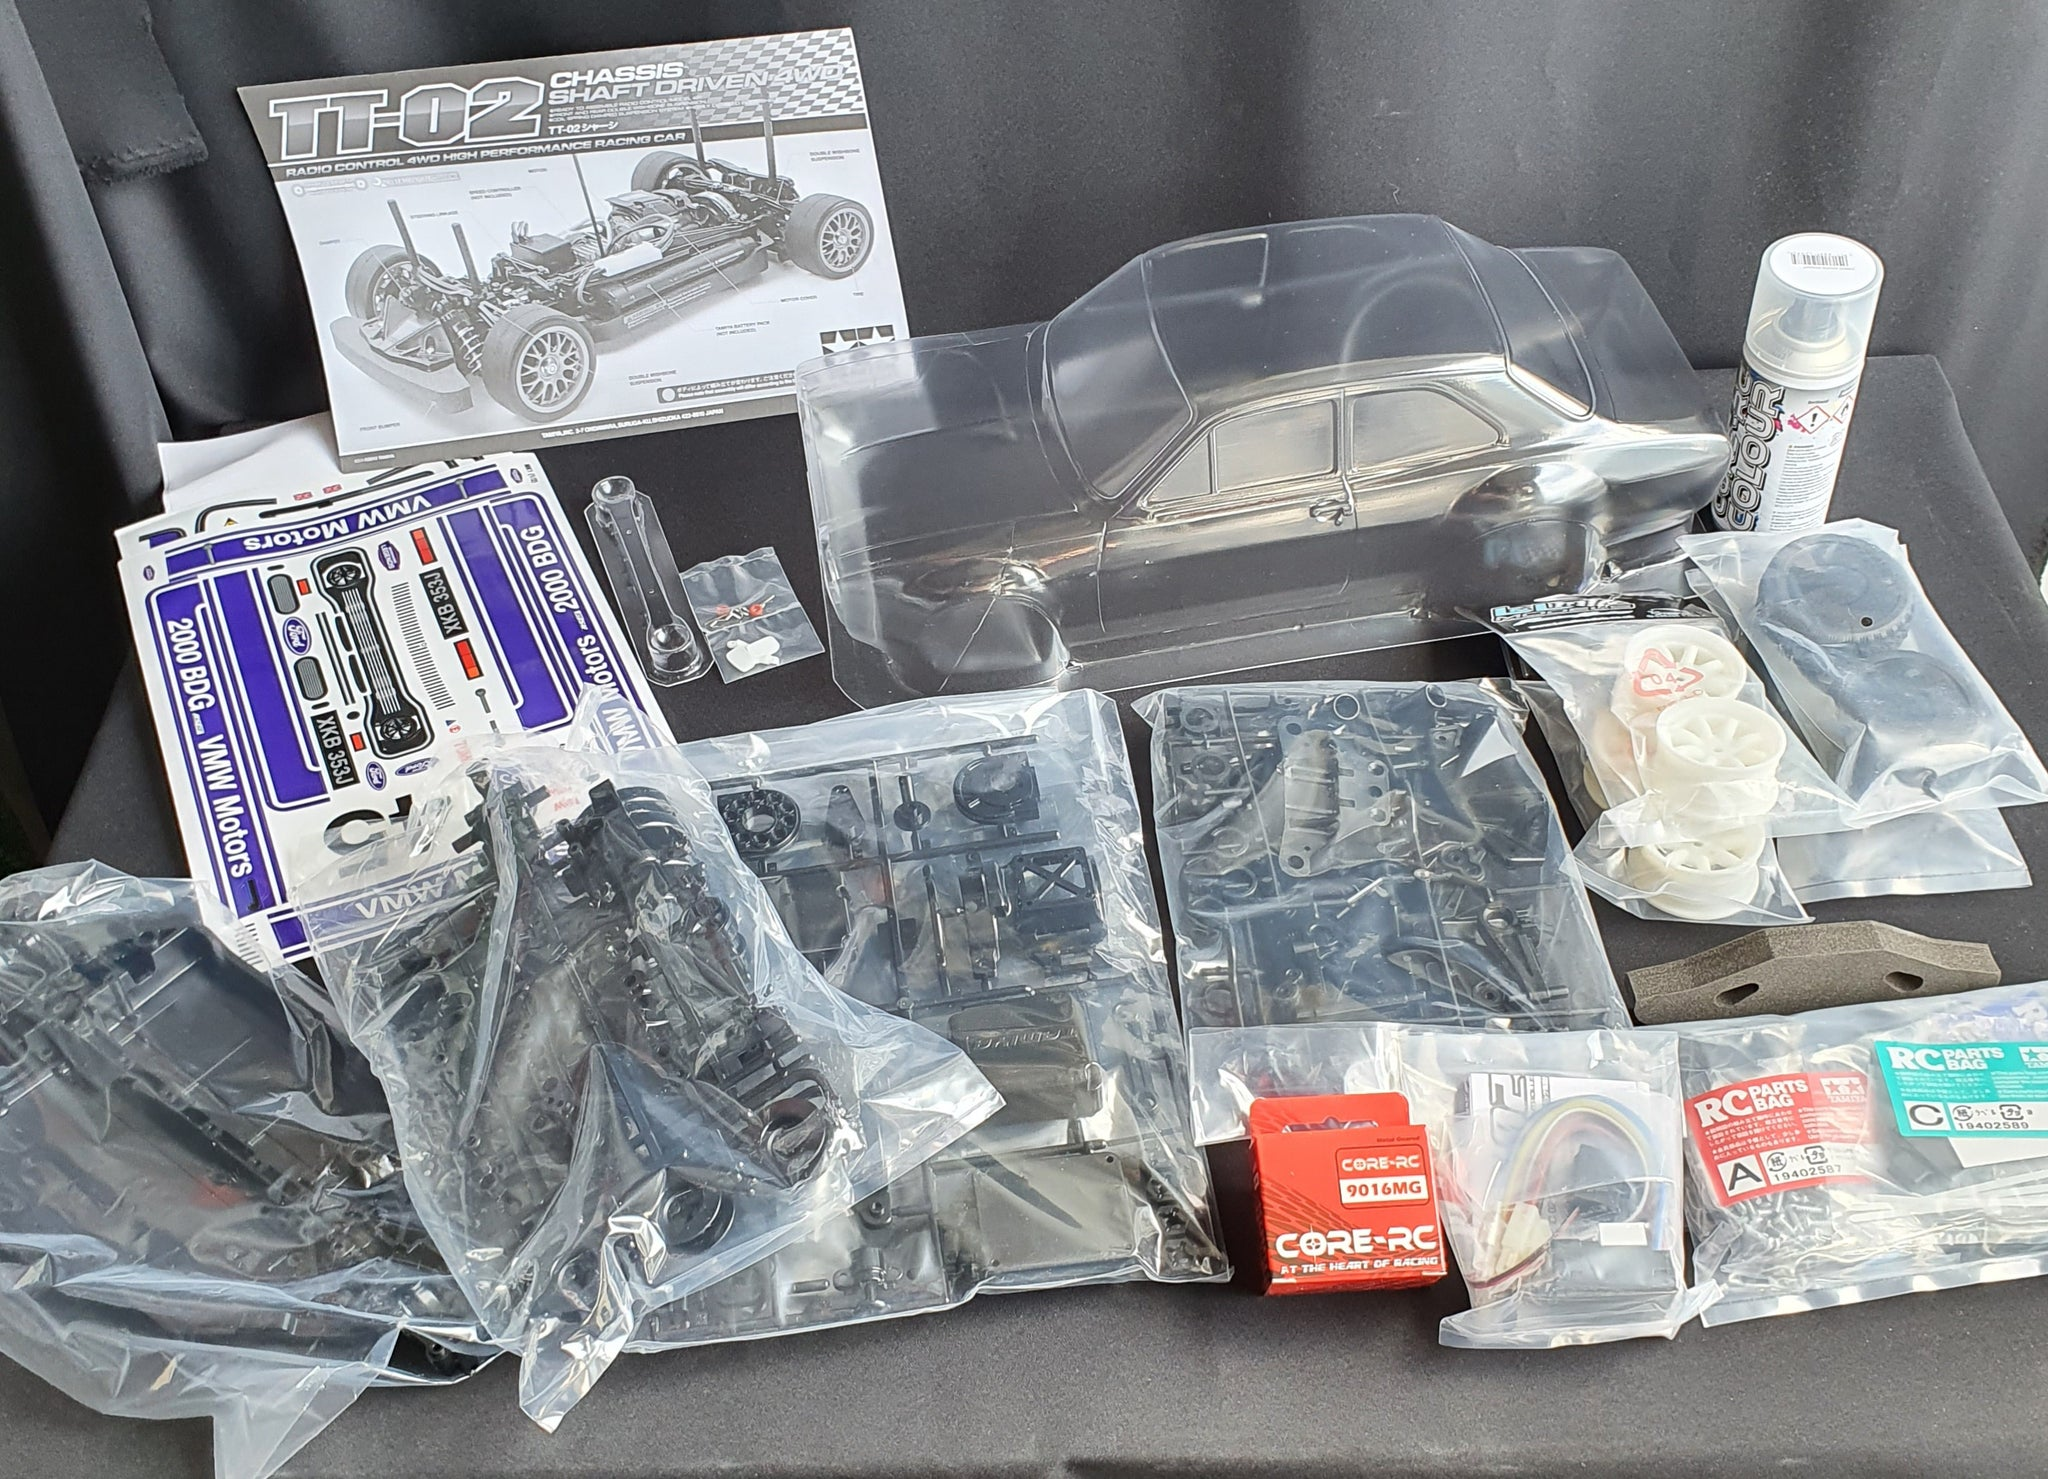 Mk1 Escort TT02 Tamiya chassis kit (VWM Motors decal option)